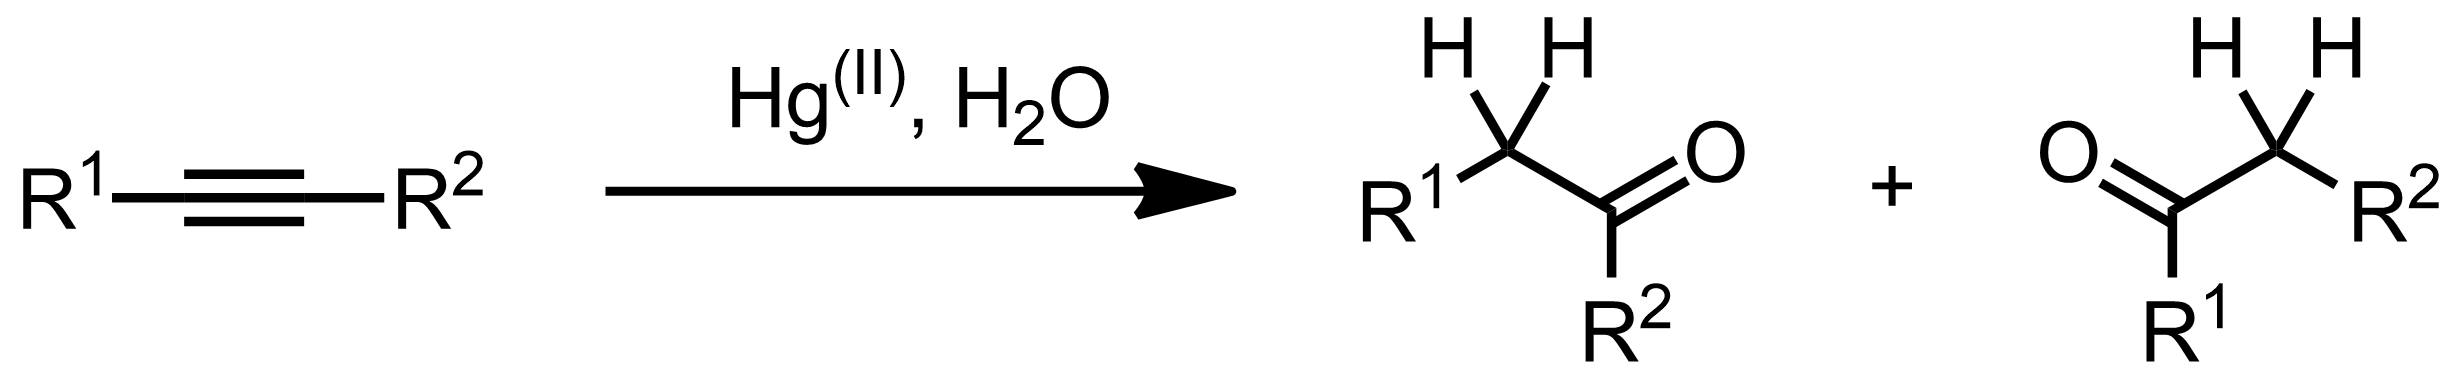 Schematic representation of the Kucherov Reaction.